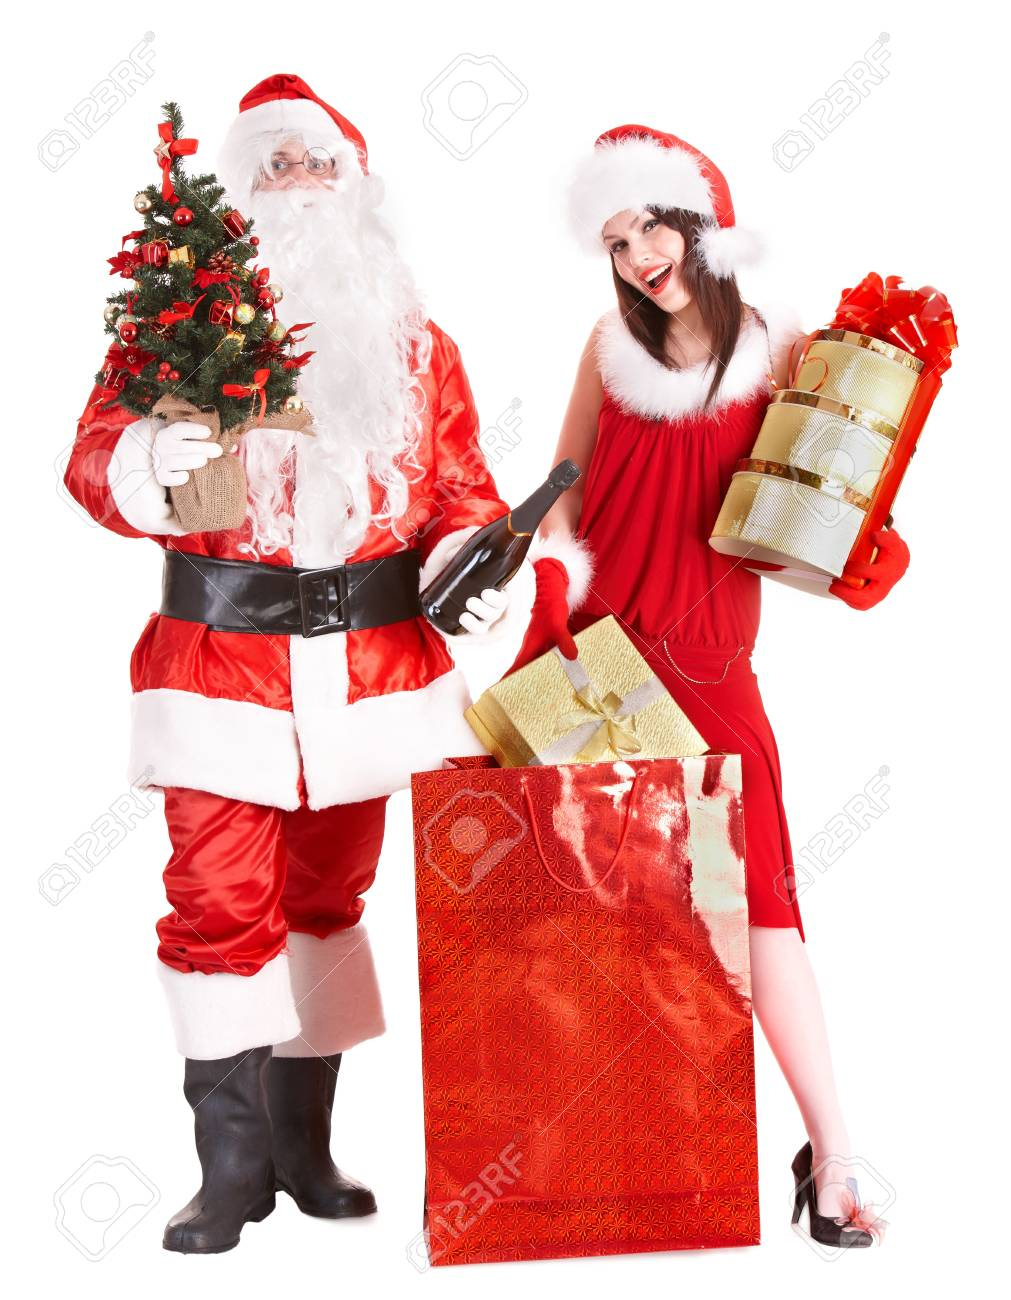 Christmas shopping of girl and santa clause with tree. Isolated. Stock Photo - 5945502